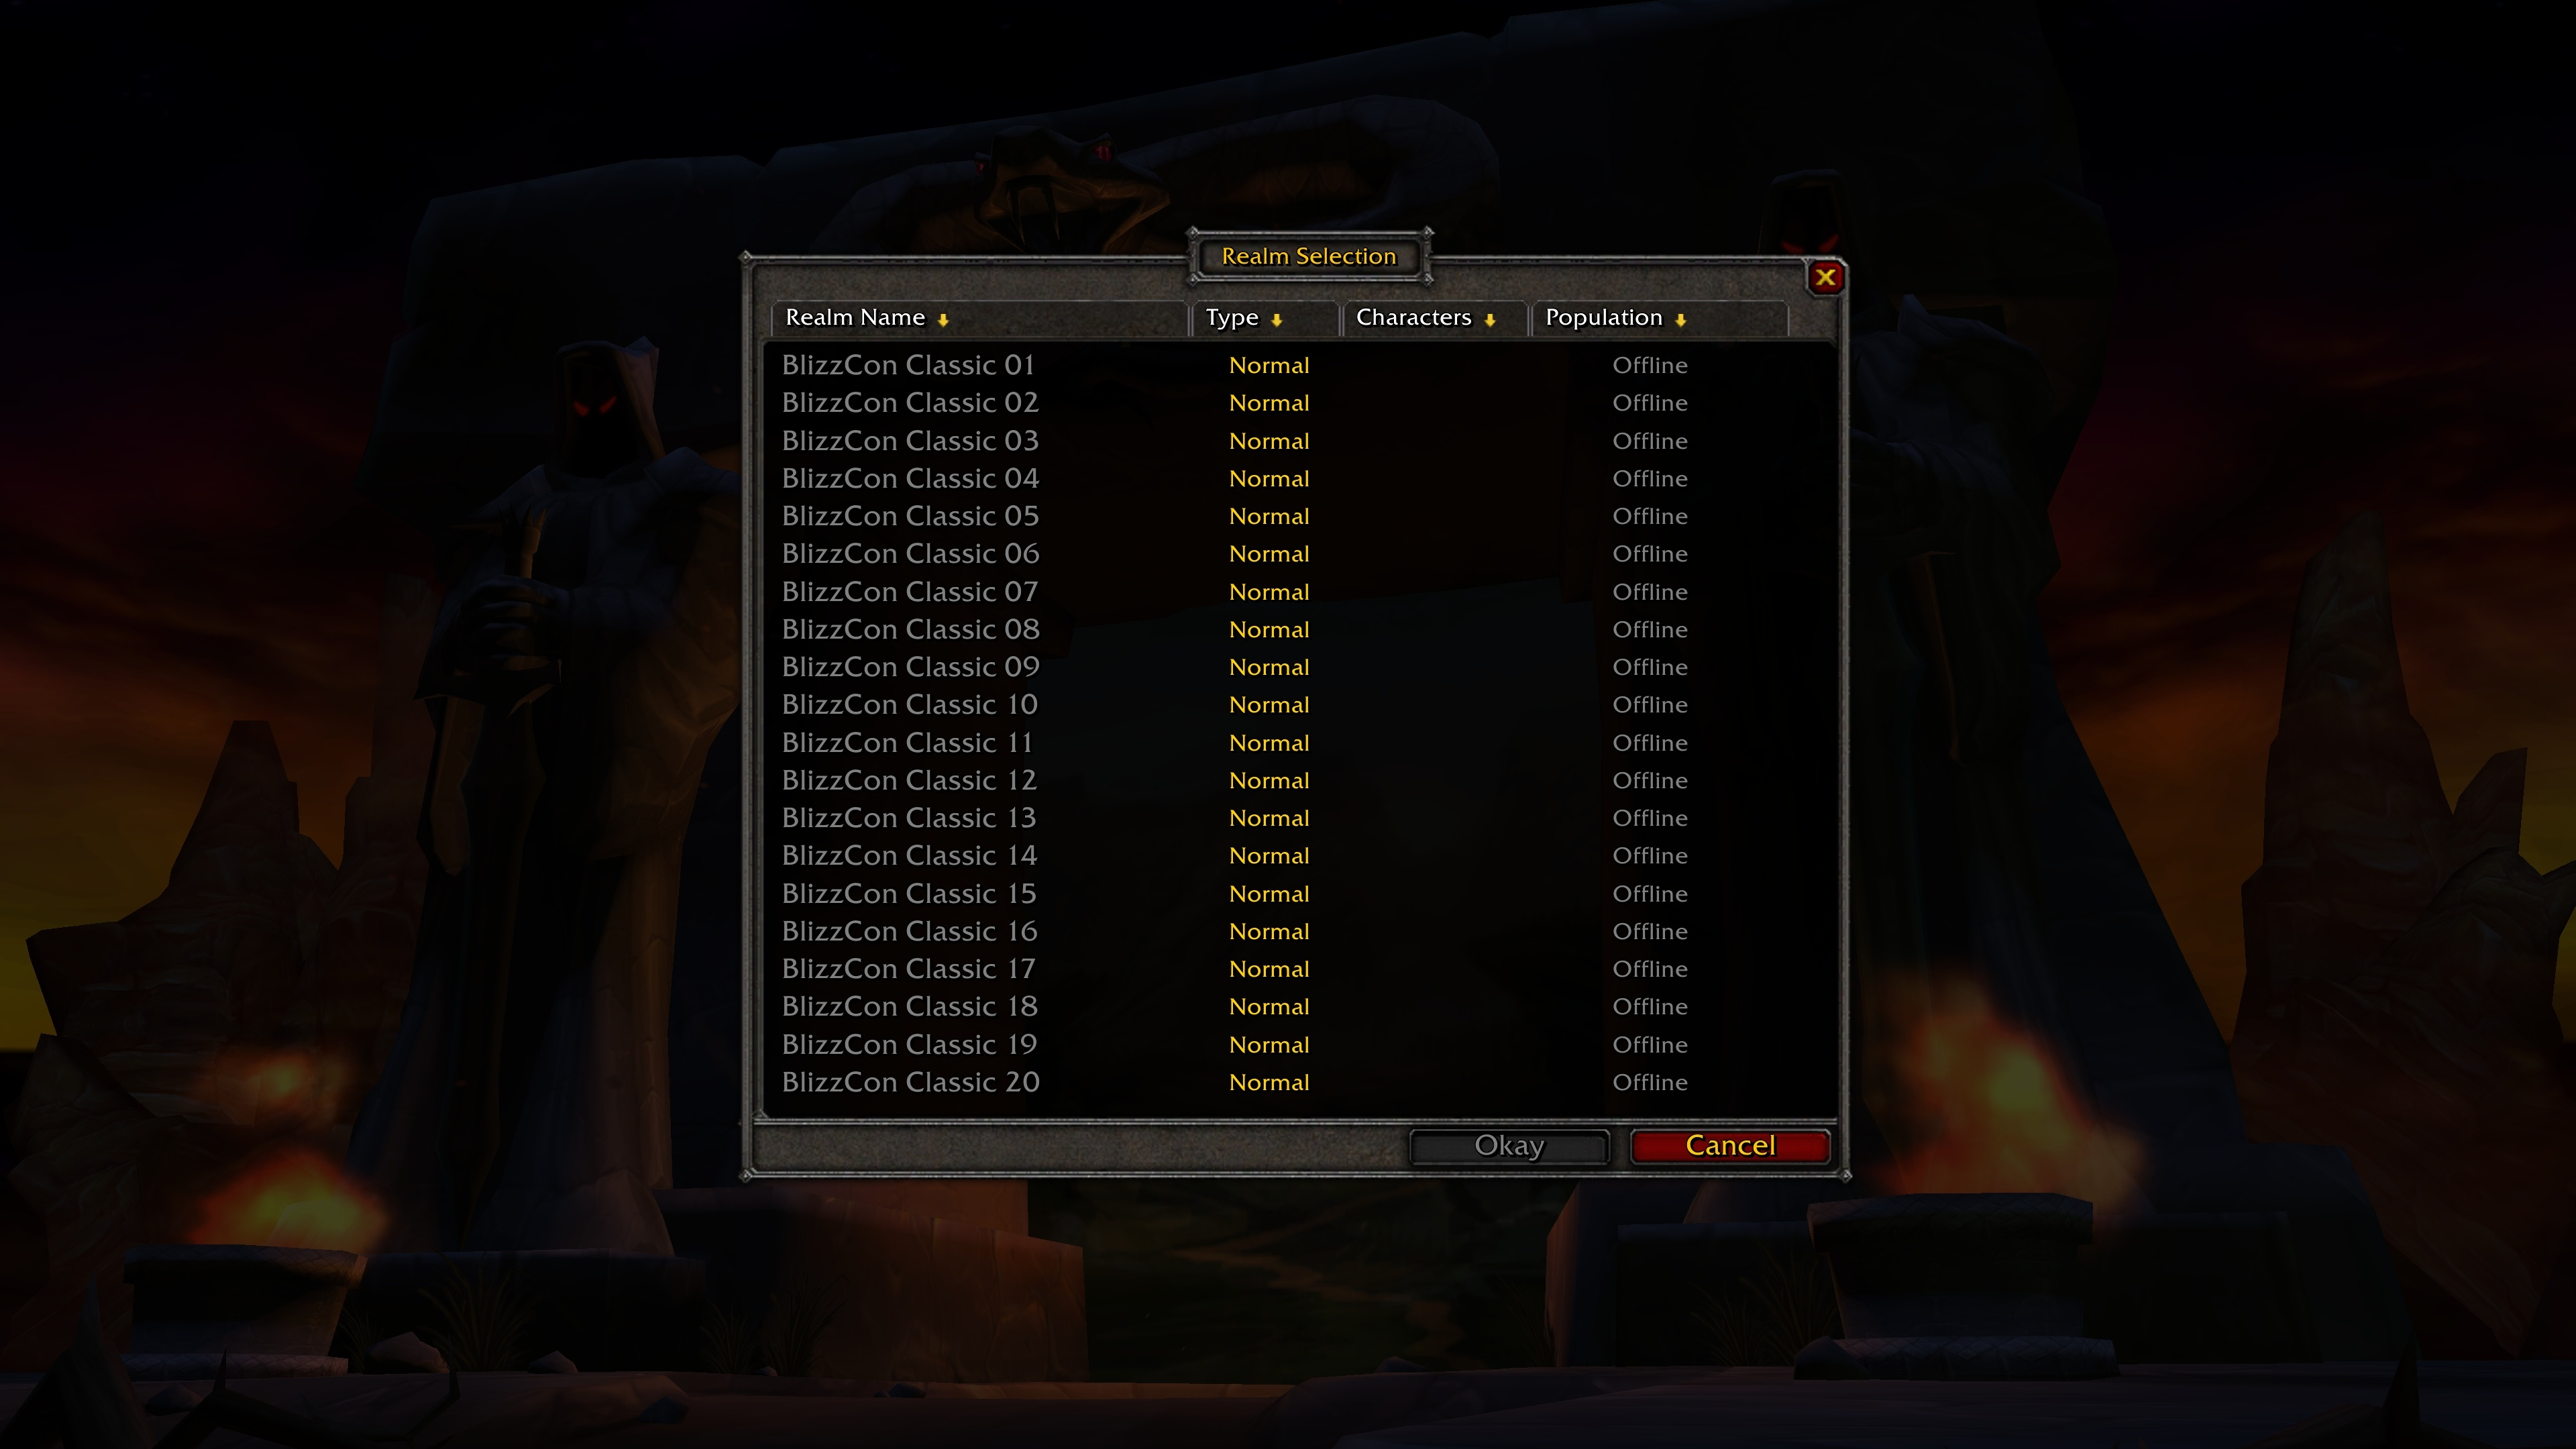 20 servers will be available for the BlizzCon Classic Demo : wow